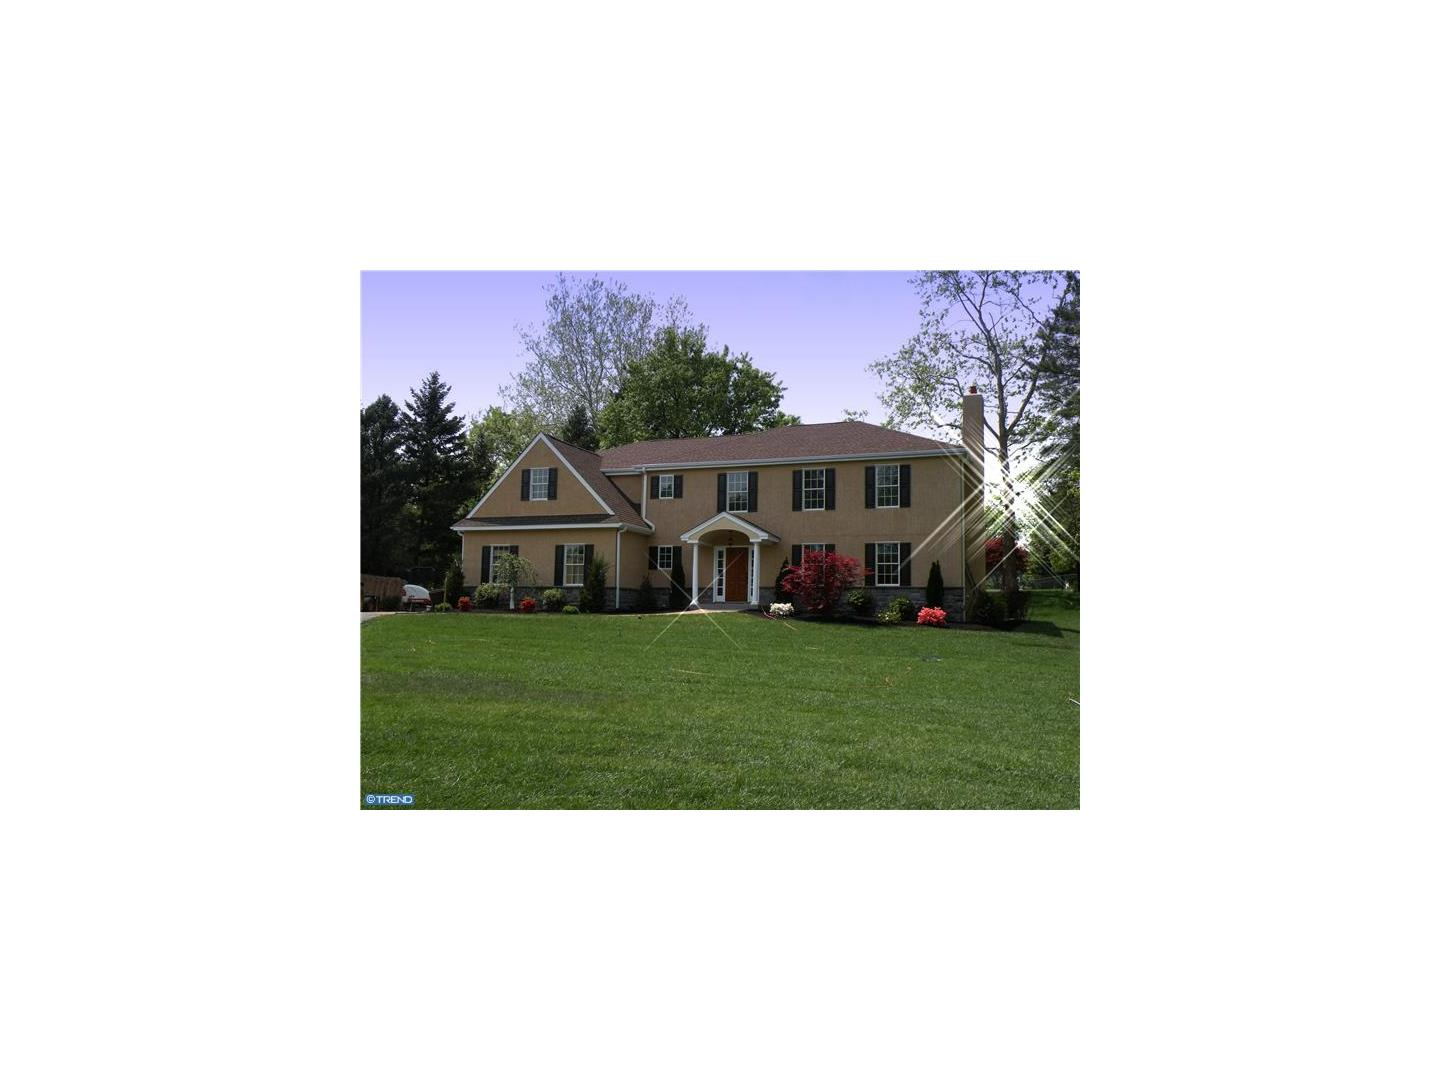 1314  Bobarn Dr, Penn Valley, PA 19072